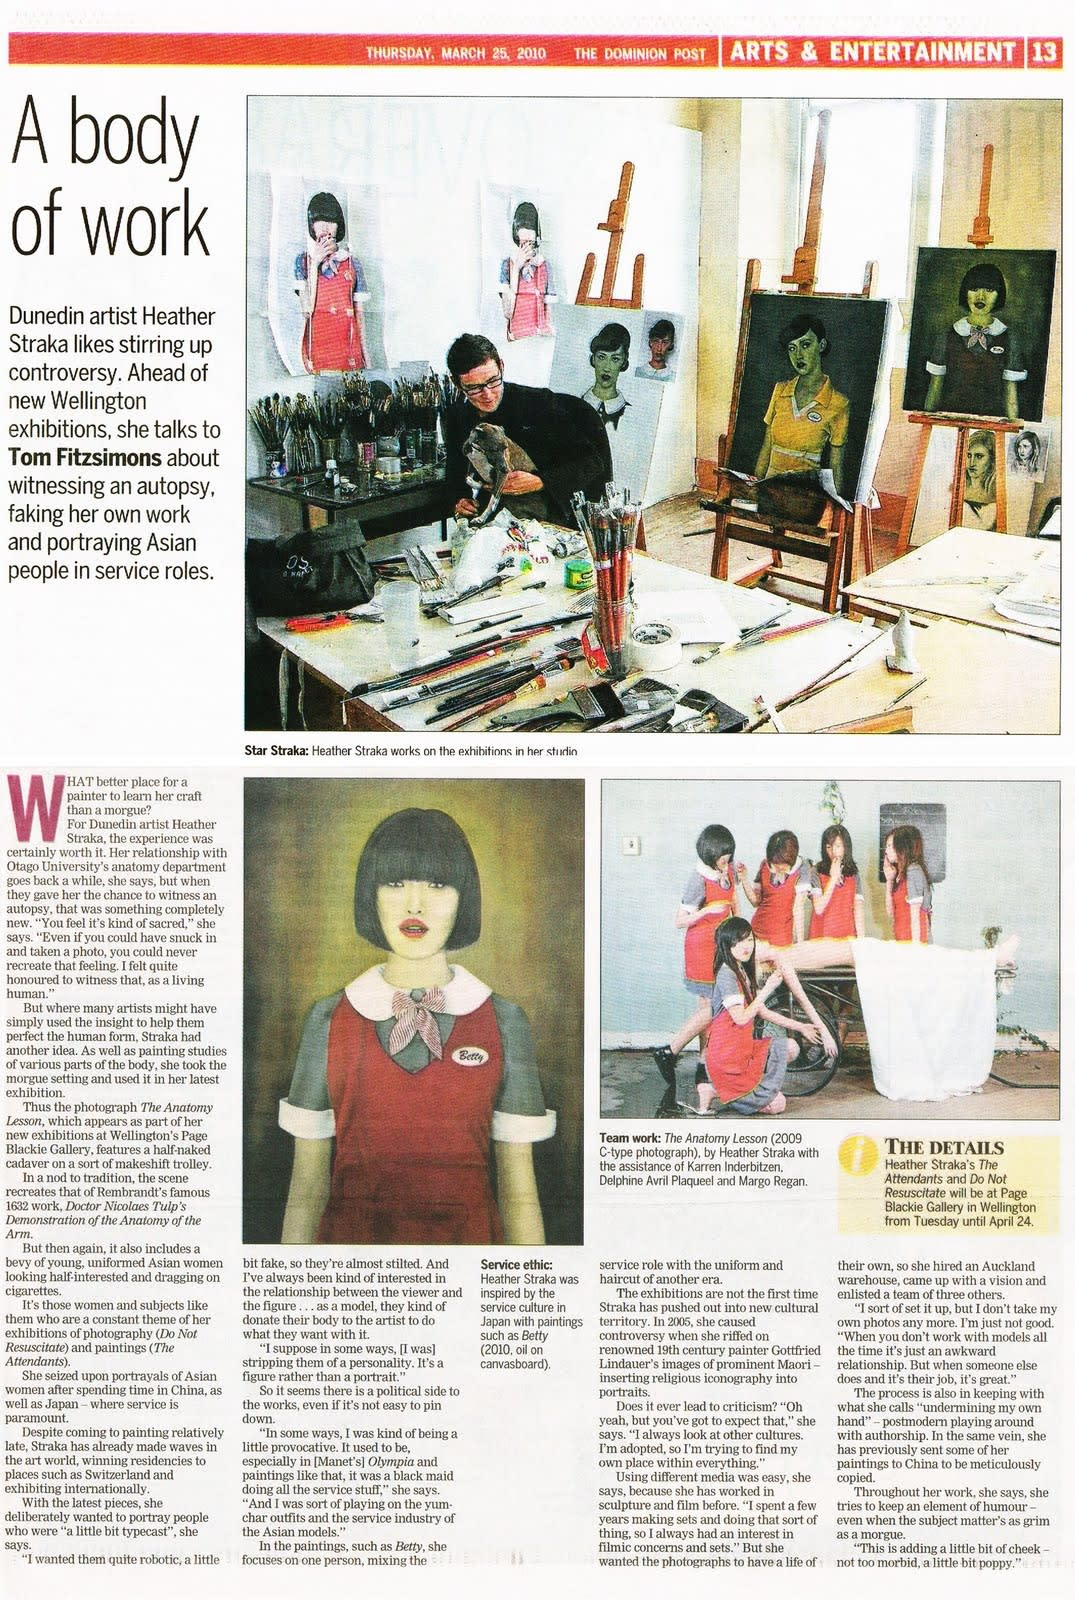 Today's feature in the Arts section of the Dom Post